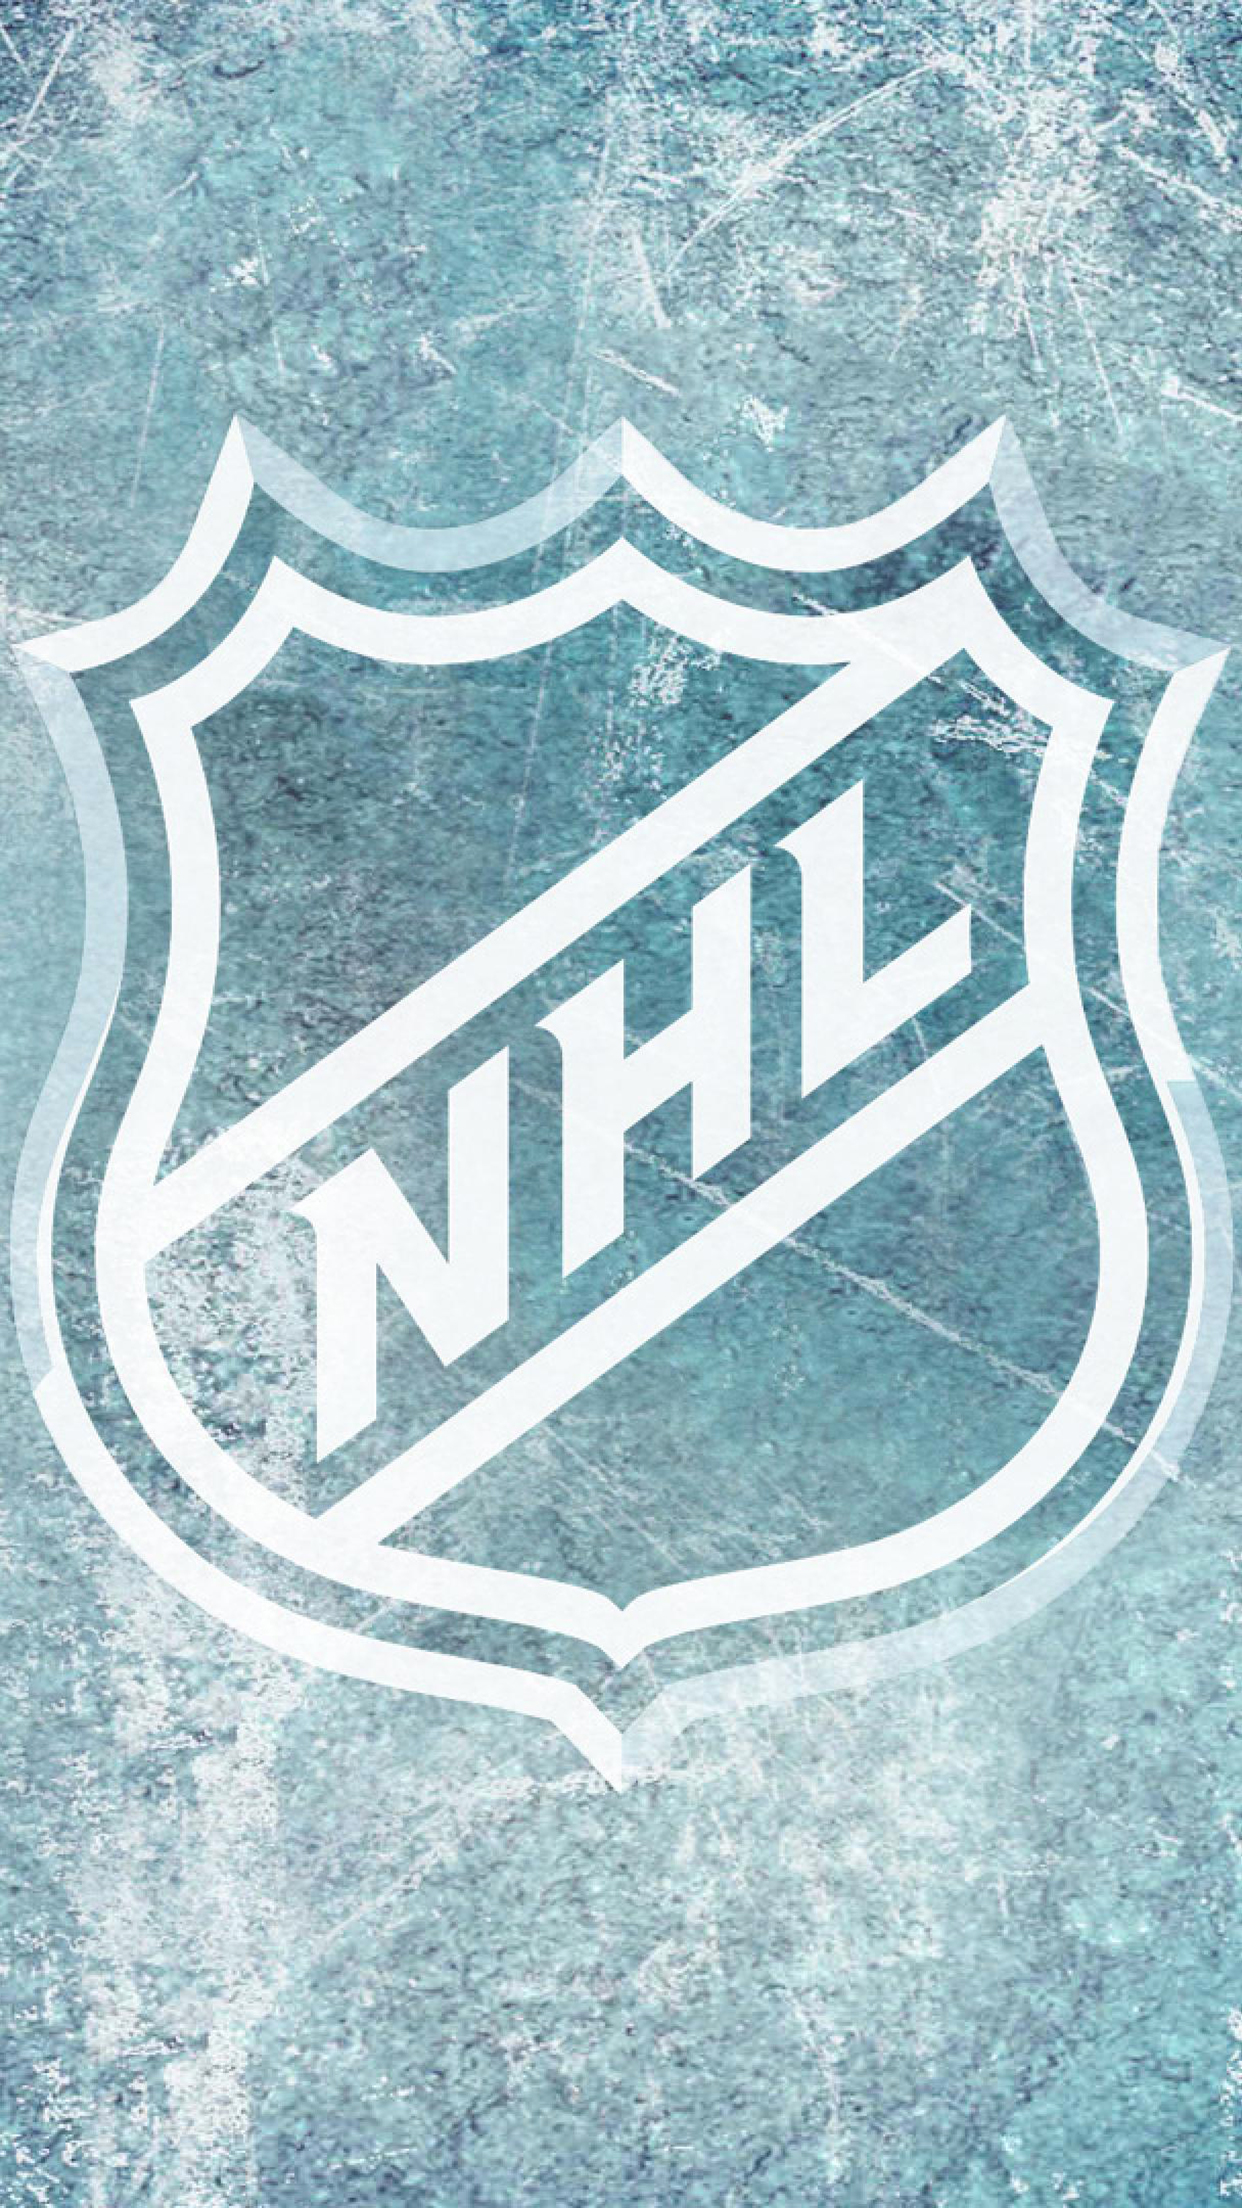 Free Download 3wallpapers Best Wallpapers For All Iphone Retina Nhl